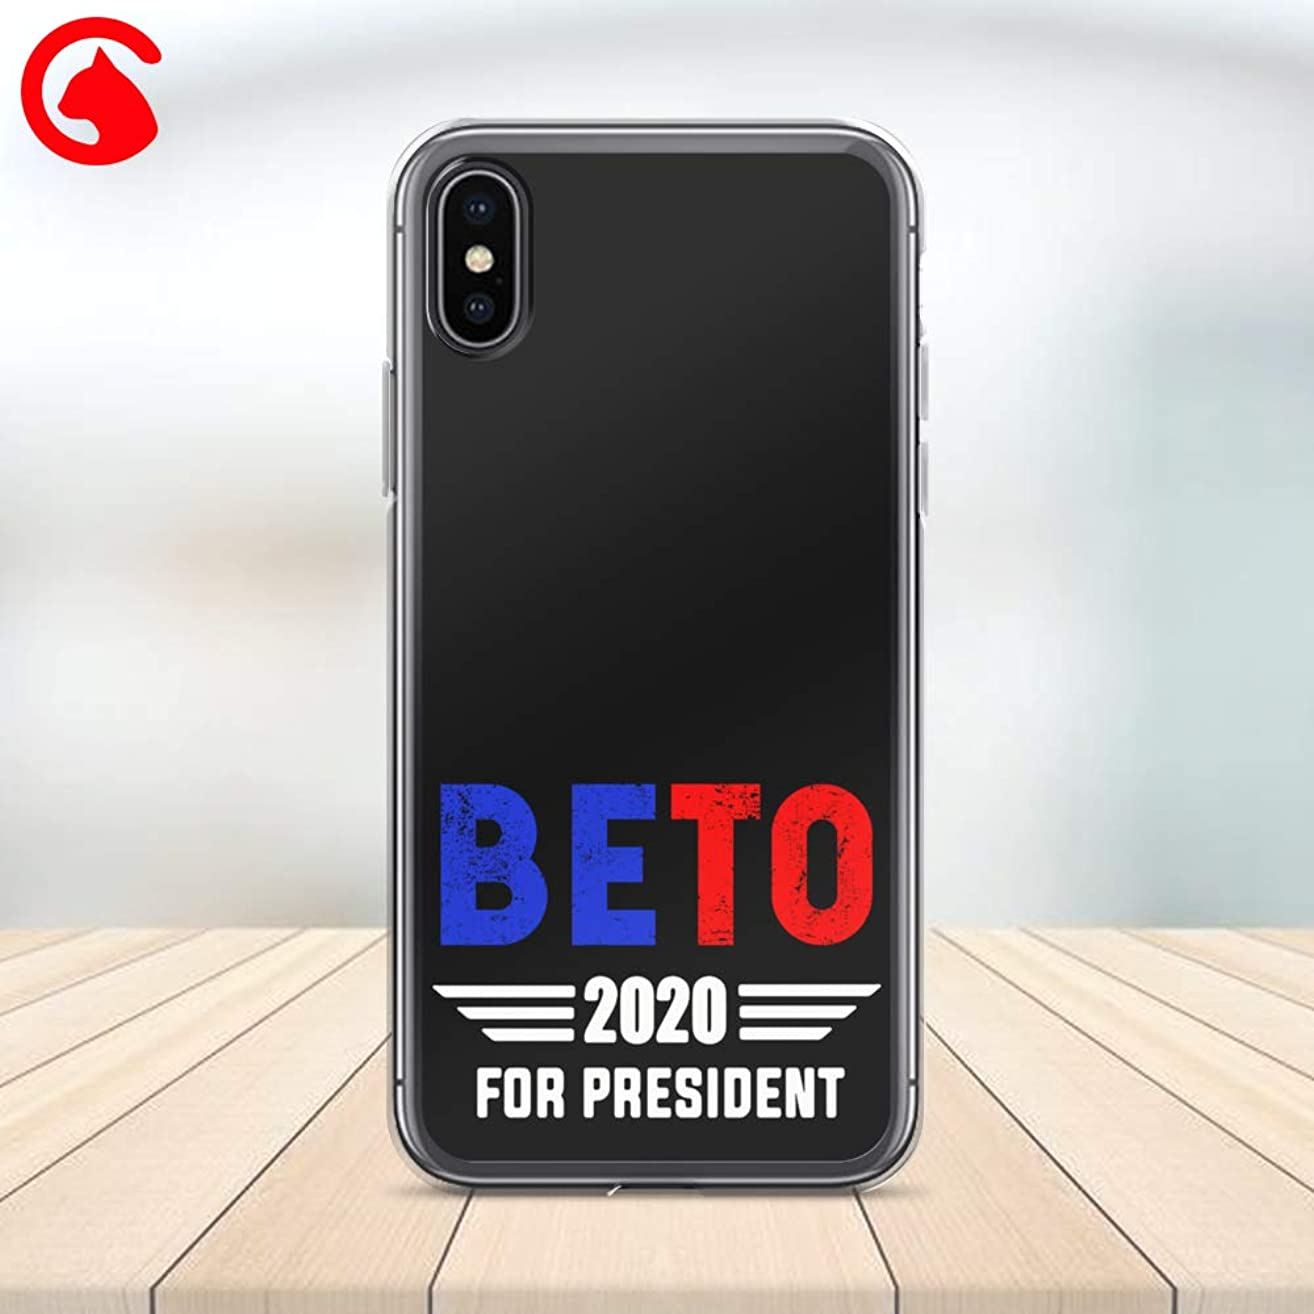 CatixCases Beto Orourke 2020 Phone Case Beto For President Custom Cell Plastic Сlear Case for Apple iPhone X/XS/XR/XS Max / 7/8 / plus iPhone 6 / 6S plus Protector Protective Cover Art Design